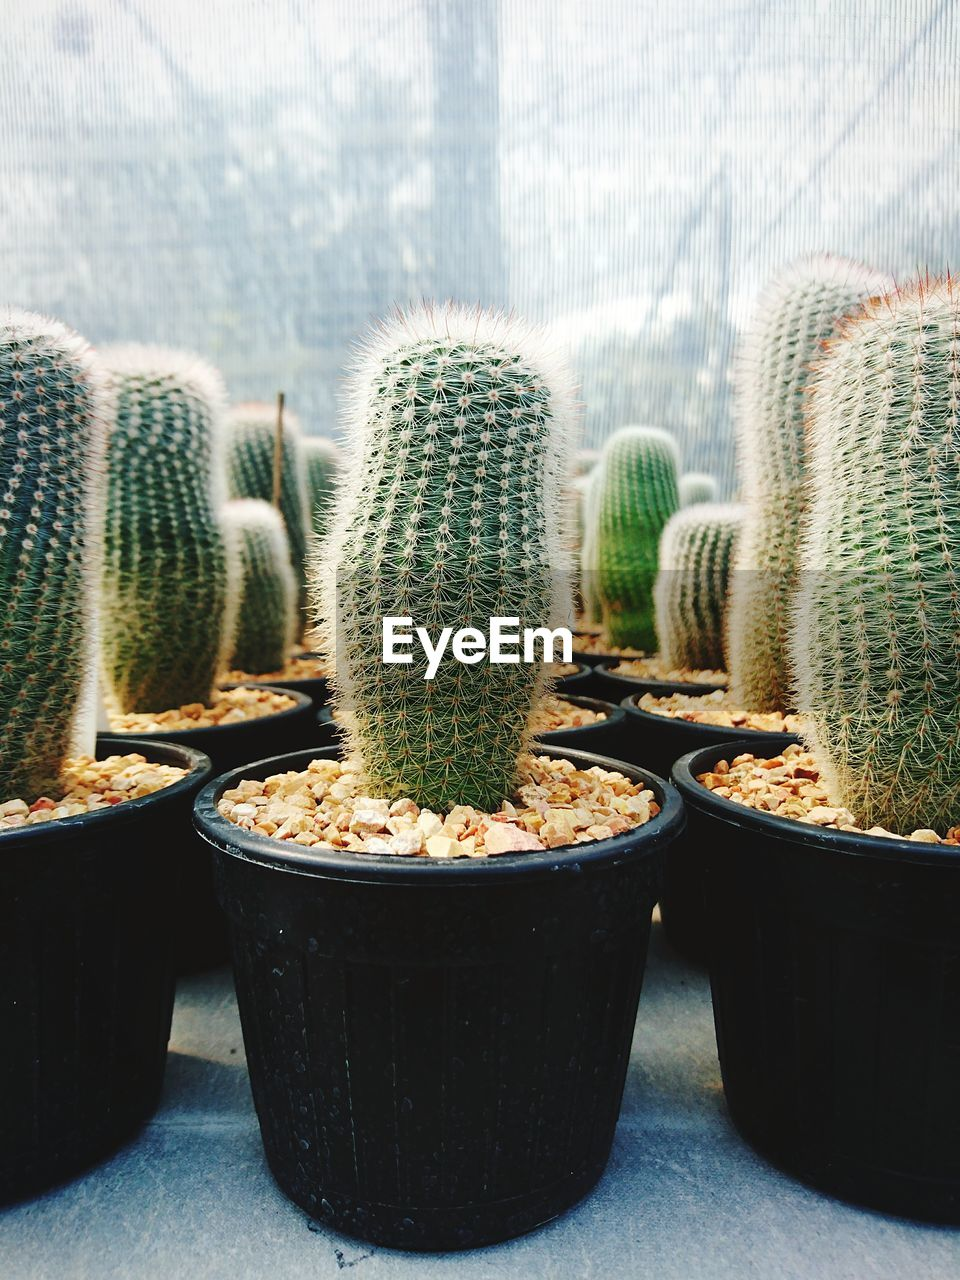 cactus, succulent plant, potted plant, growth, plant, no people, thorn, indoors, nature, close-up, day, window, focus on foreground, green color, beauty in nature, barrel cactus, spiked, sharp, natural pattern, houseplant, flower pot